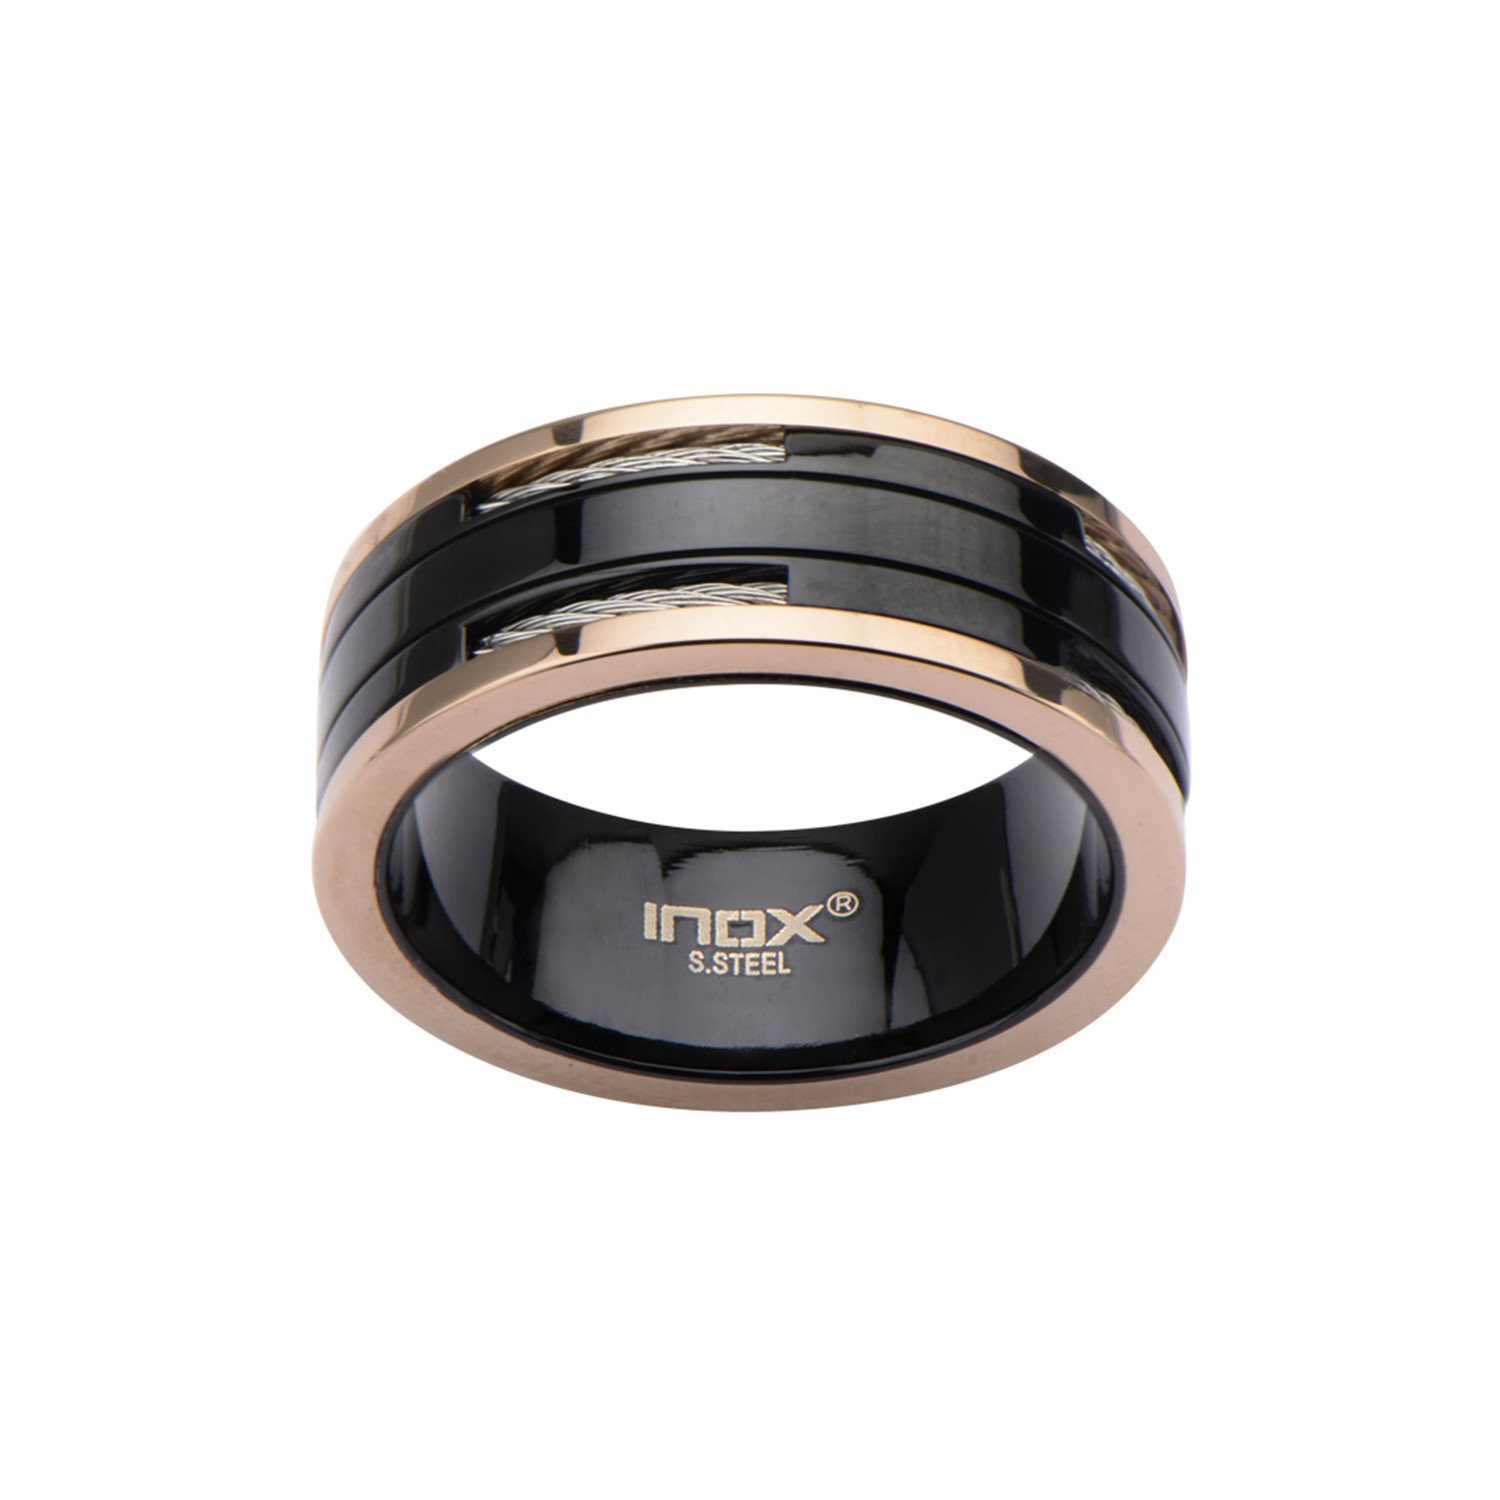 cable inlay ring black rose gold size 9 inox. Black Bedroom Furniture Sets. Home Design Ideas